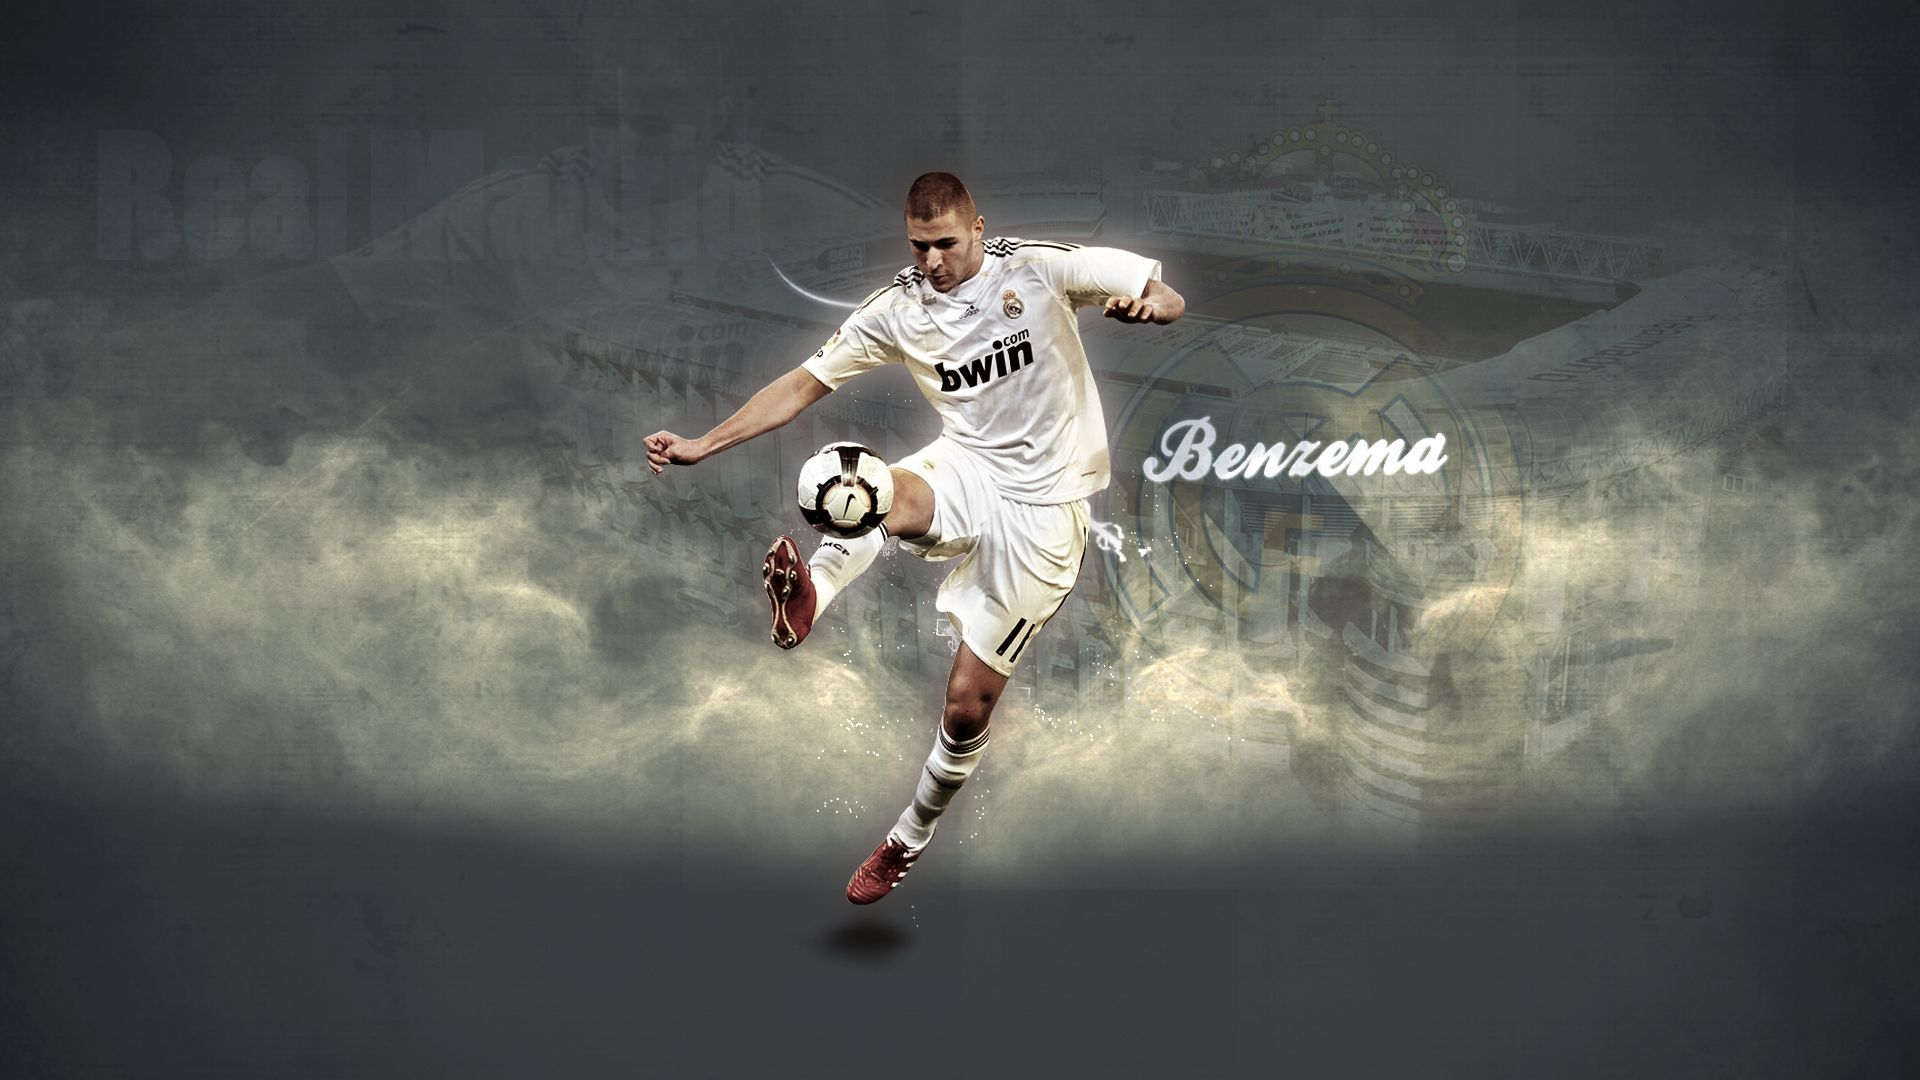 Real Madrid Benzema Hd Wallpaper